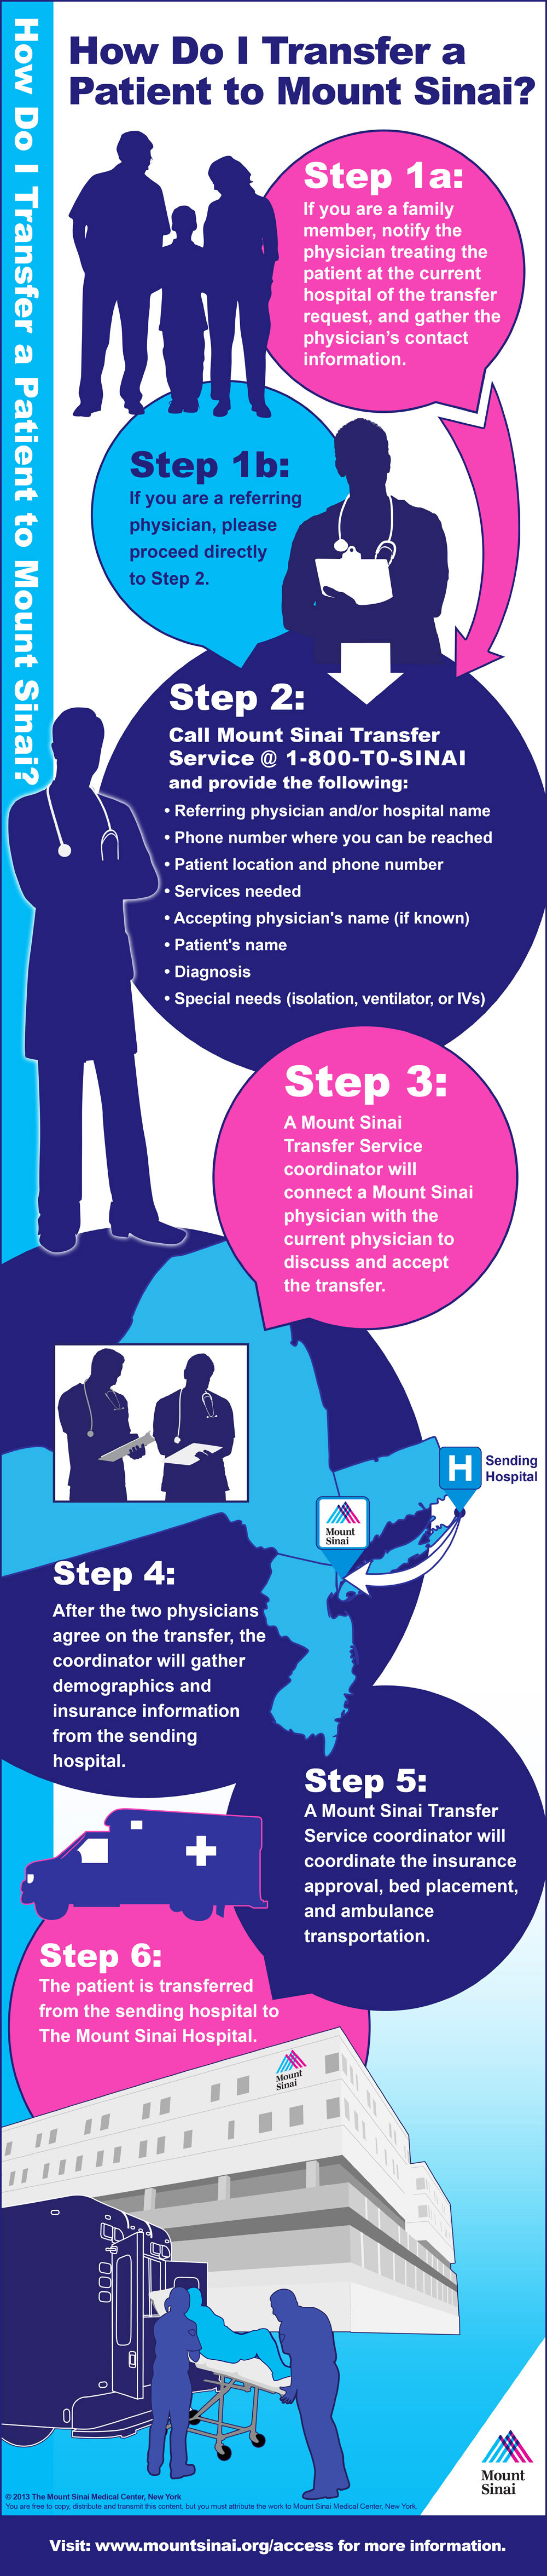 Transferring a Patient to Mount Sinai Infographic